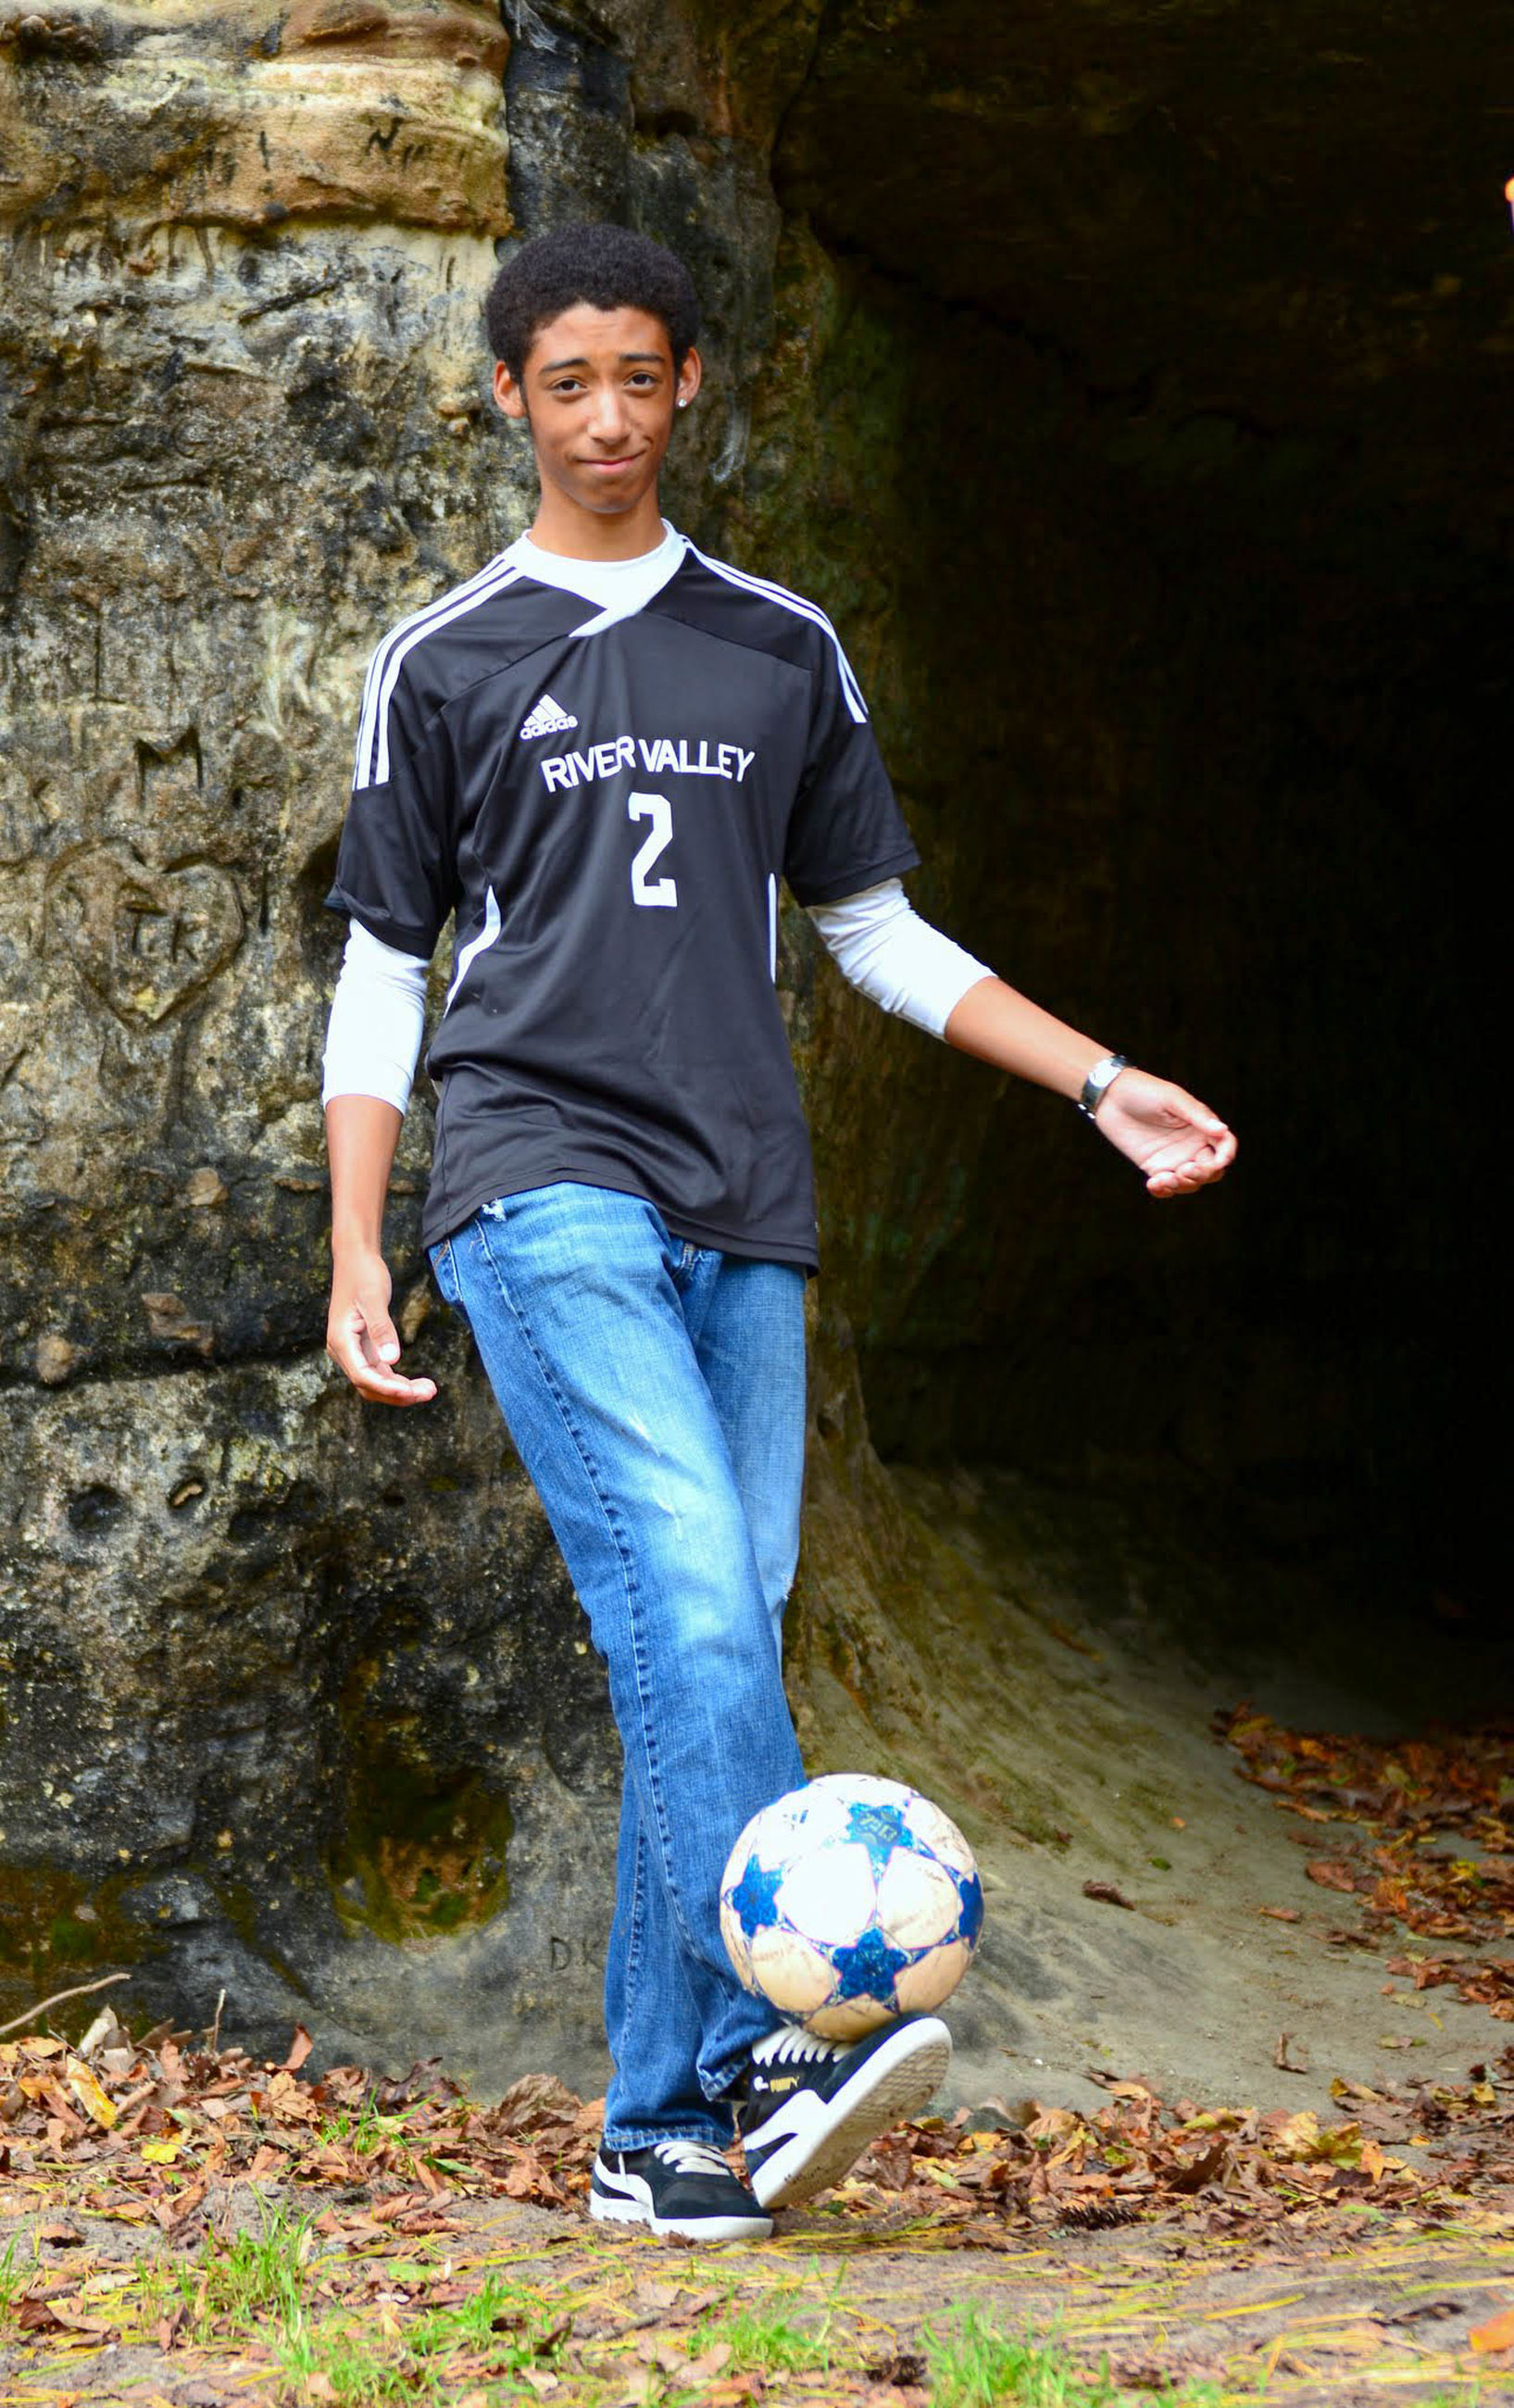 one person, soccer, soccer ball, ball, full length, casual clothing, team sport, sport, sports equipment, real people, men, front view, day, nature, young adult, leisure activity, looking at camera, males, portrait, teenager, jeans